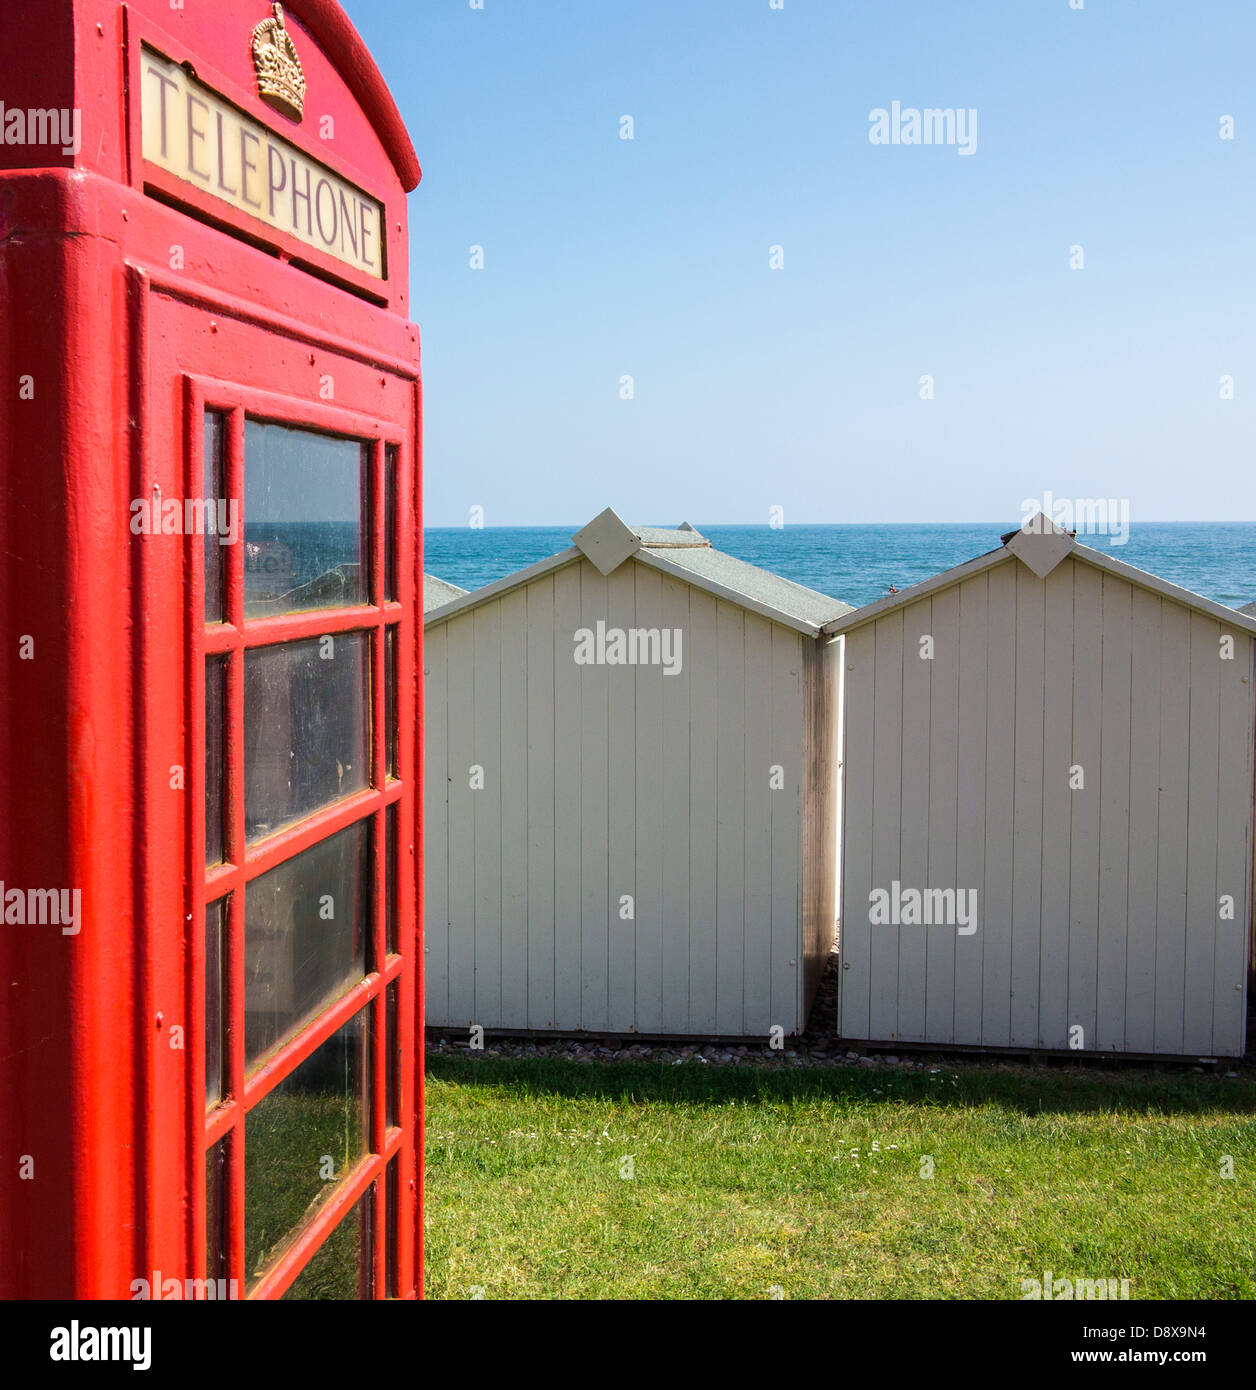 Old red telephone box and beach huts on the seafront at Budleigh Salterton, Devon, England - Stock Image